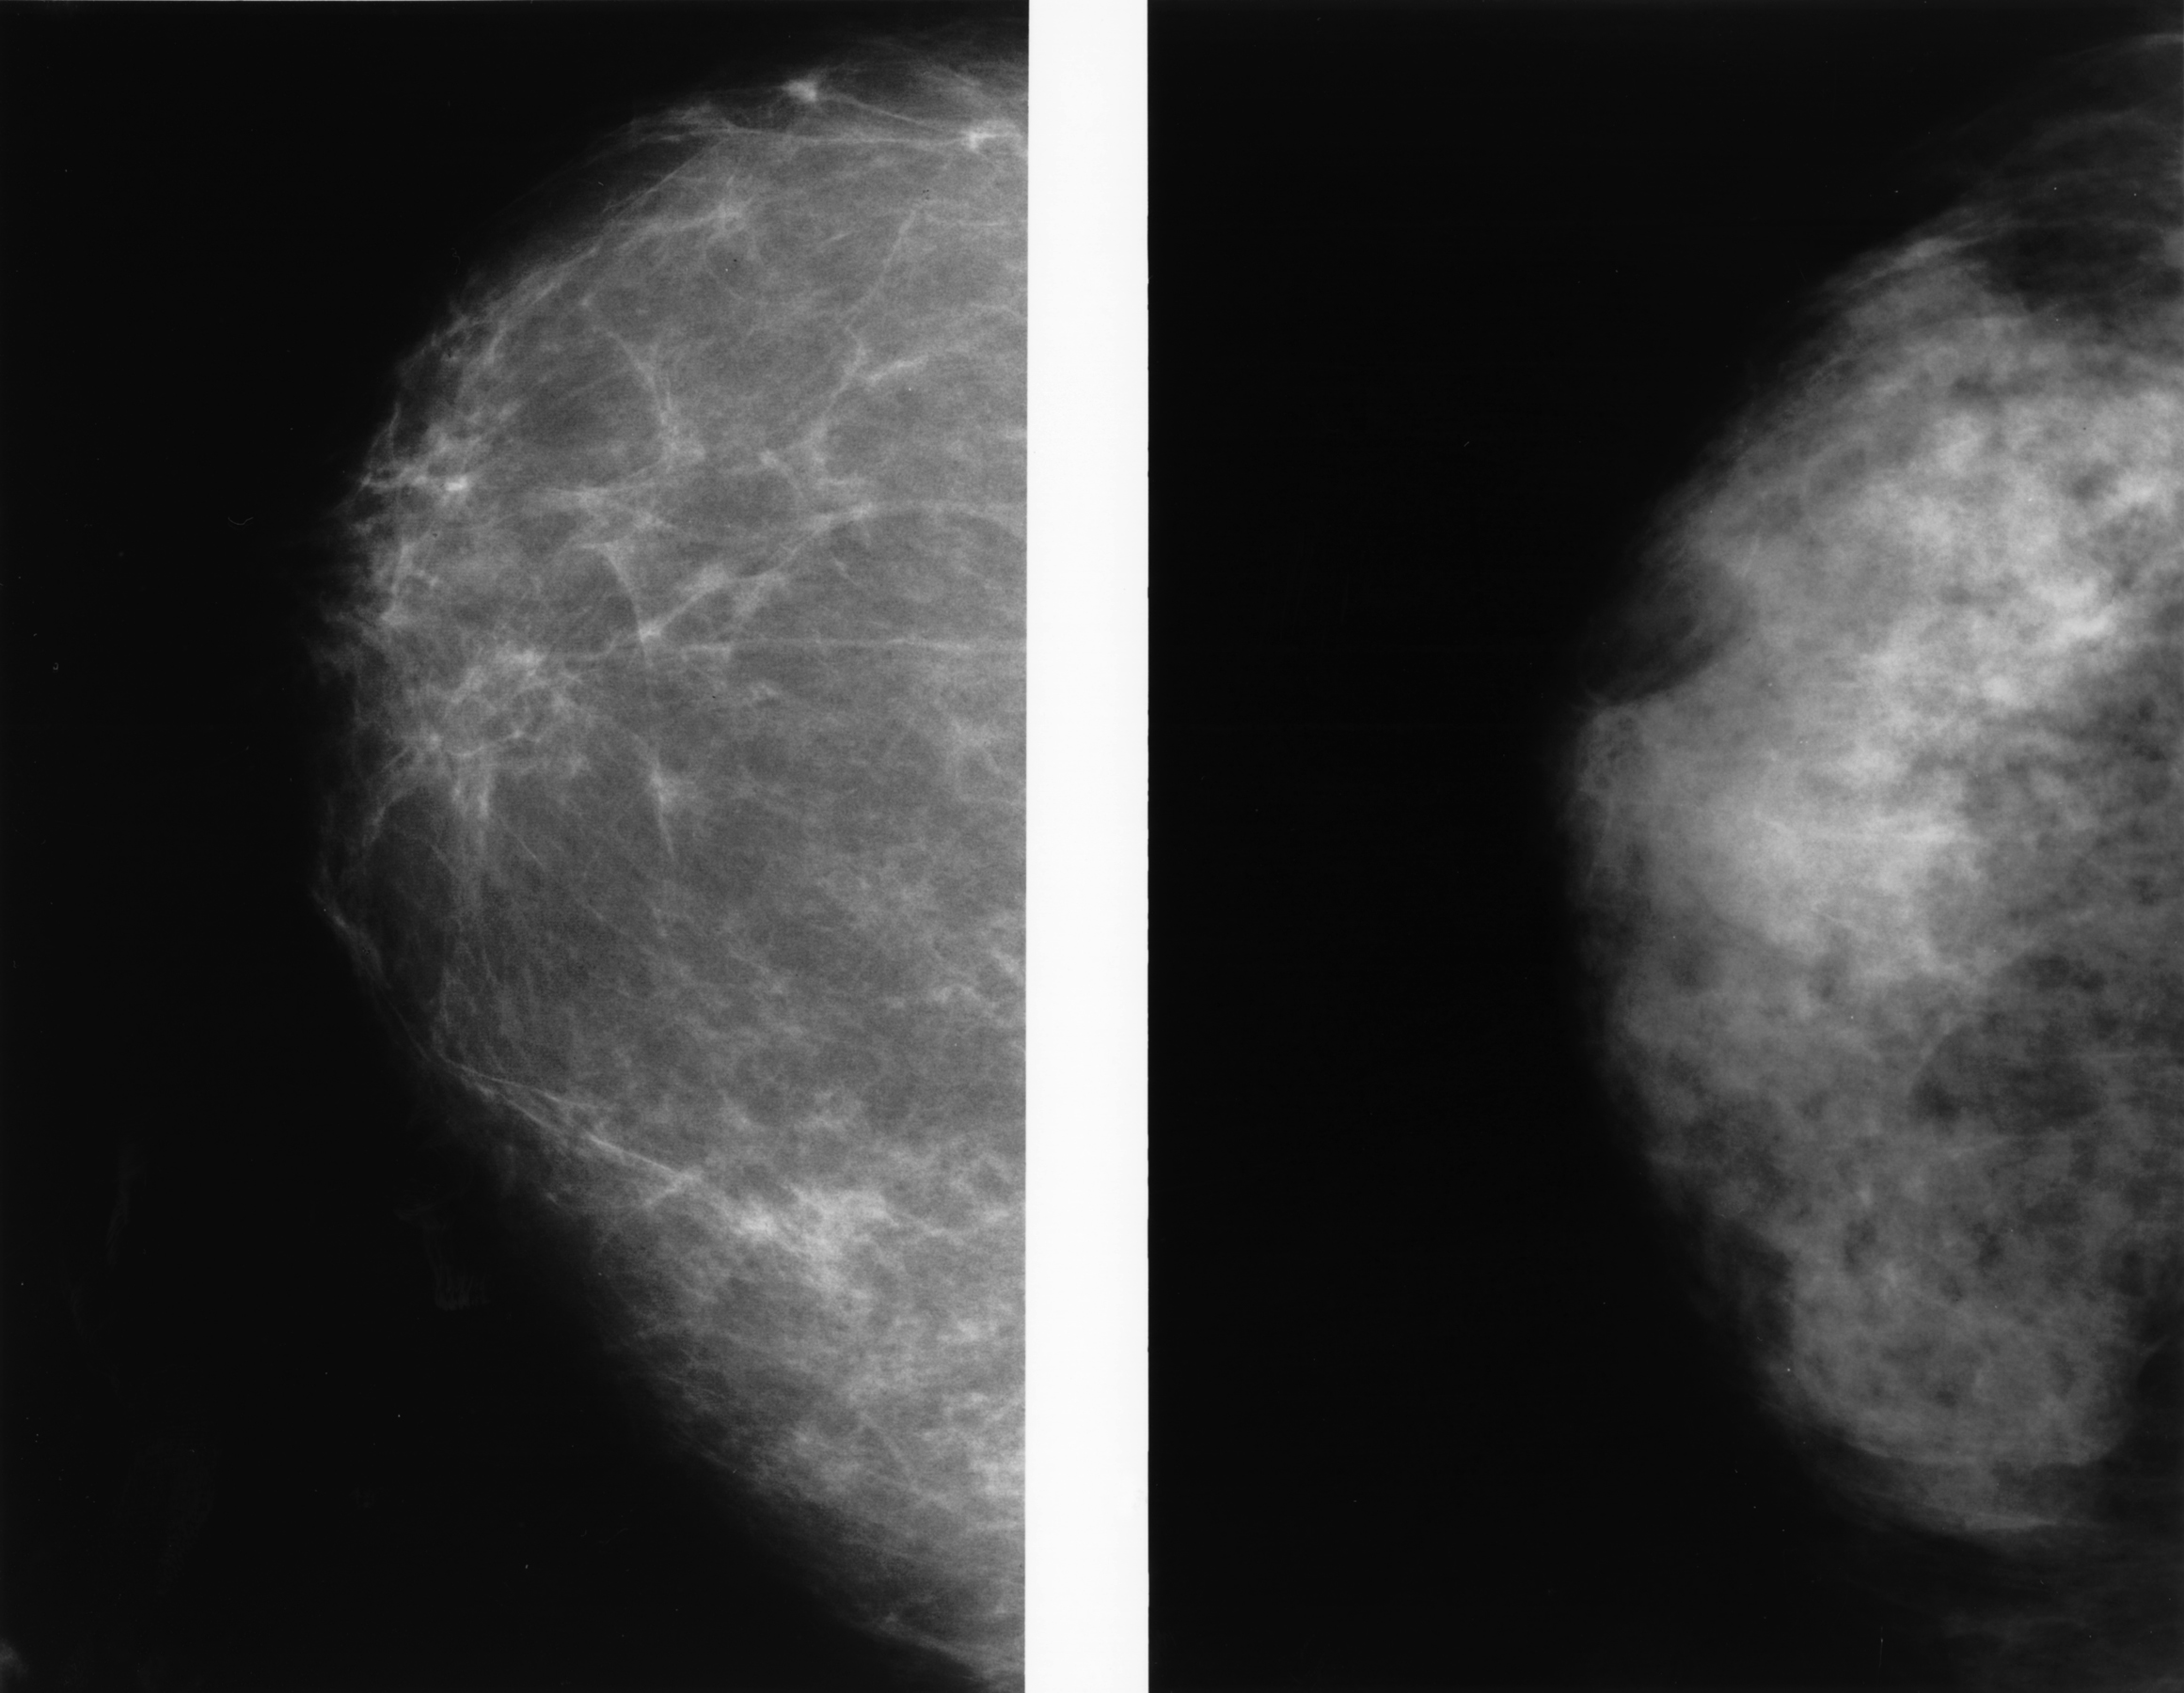 Dense breasts are heterogeneously